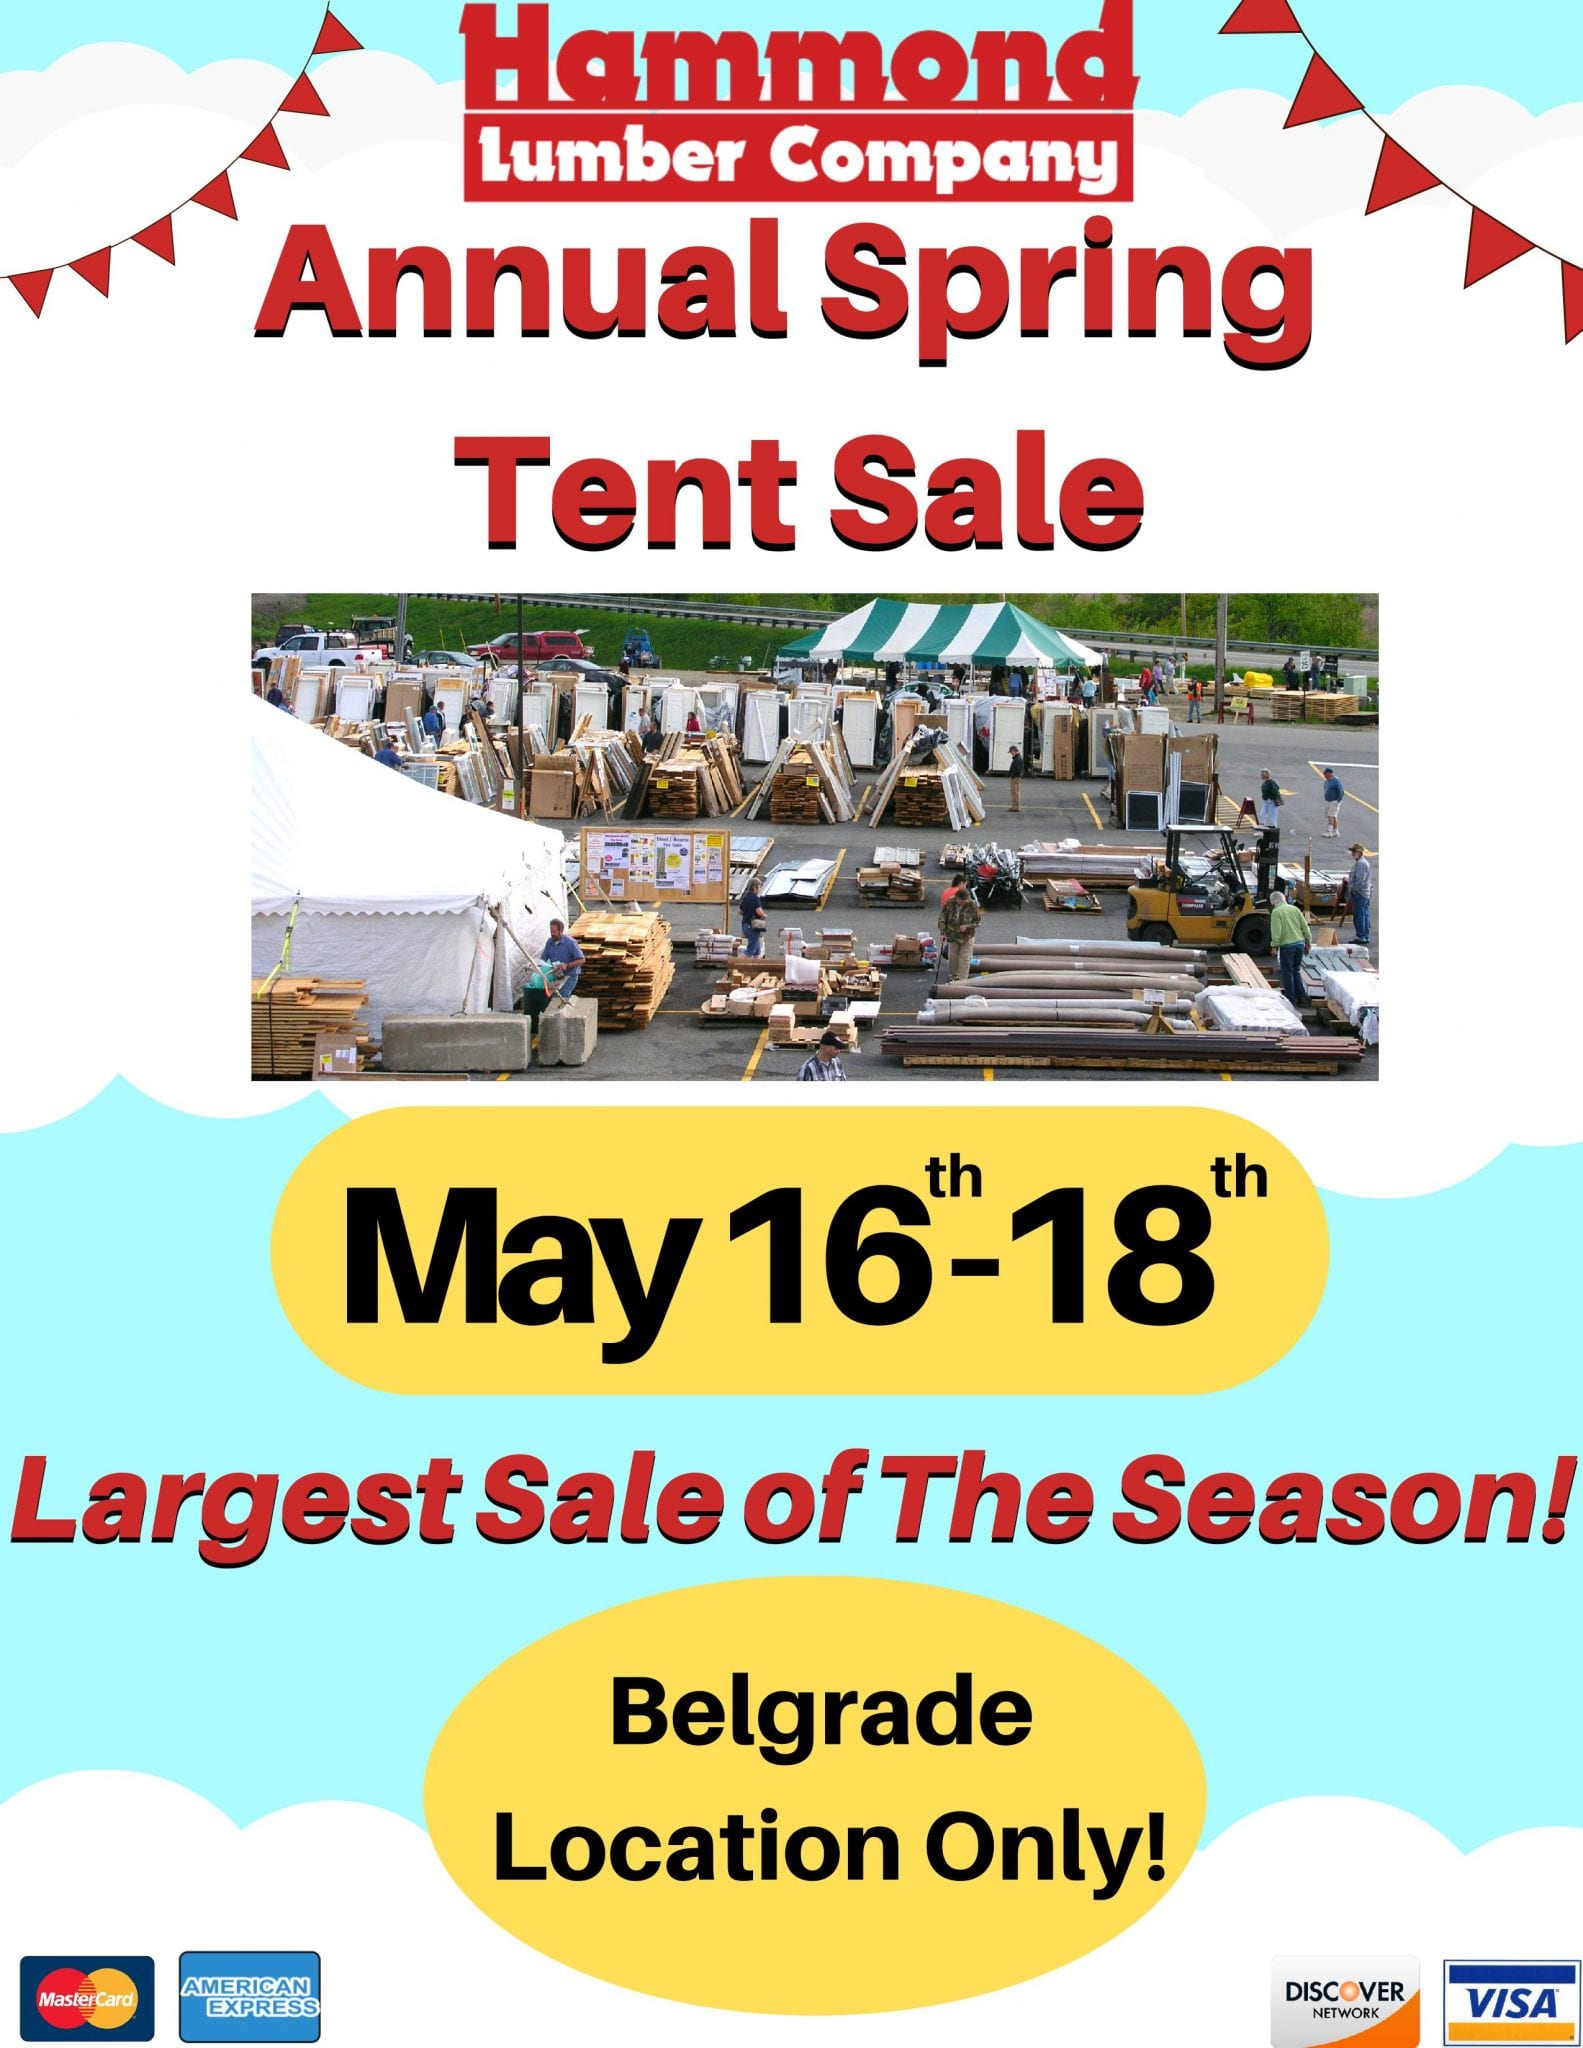 Annual Spring Tent Sale